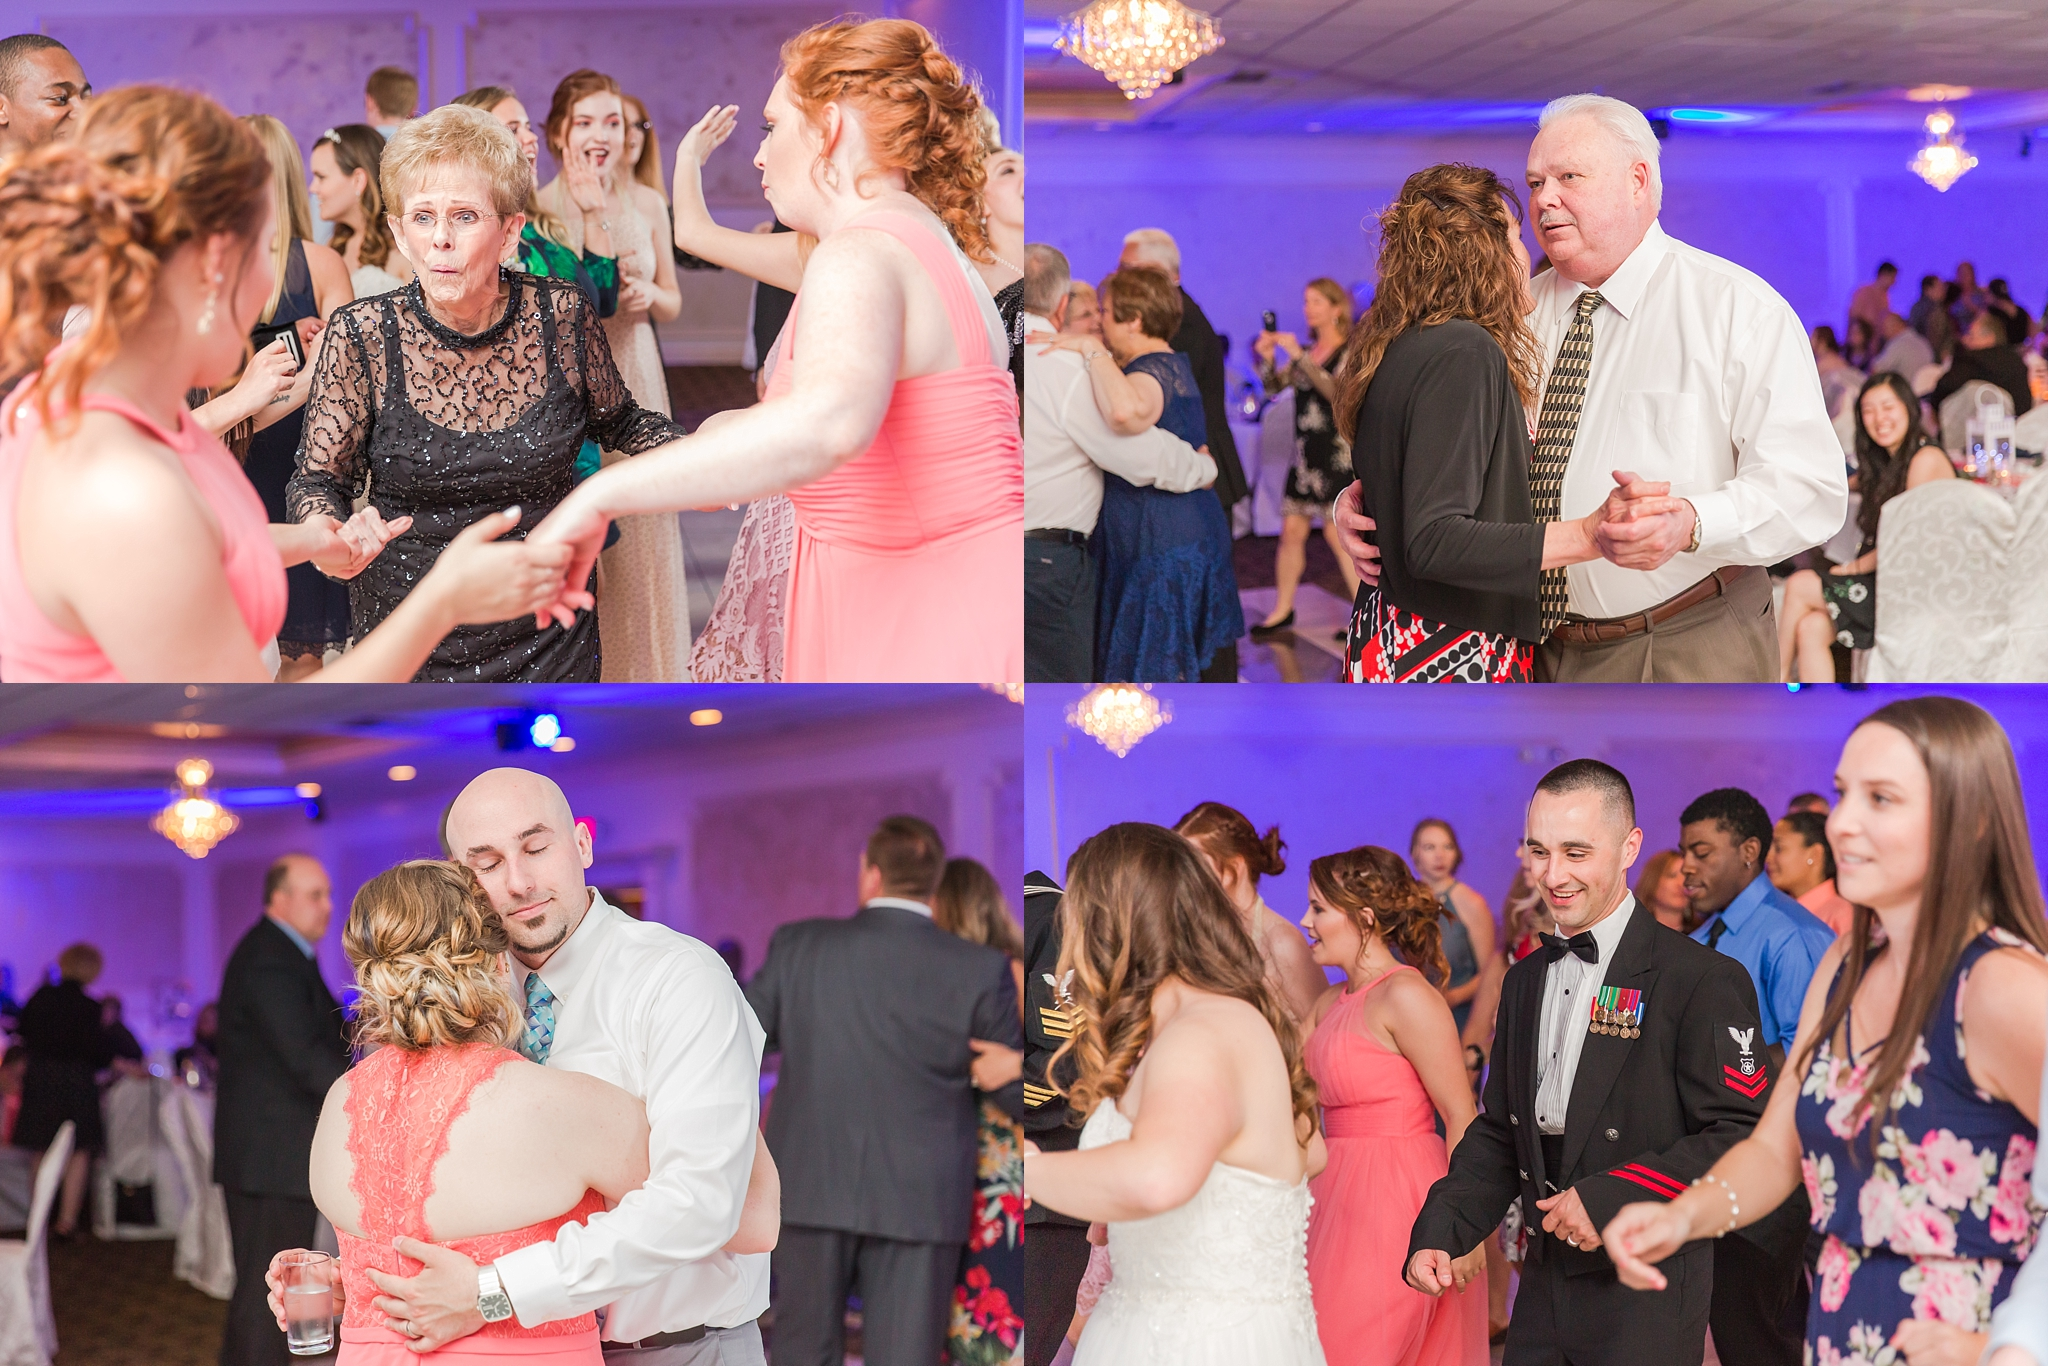 romantic-artful-candid-wedding-photos-in-st-clair-shores-at-the-white-house-wedding-chapel-by-courtney-carolyn-photography_0086.jpg